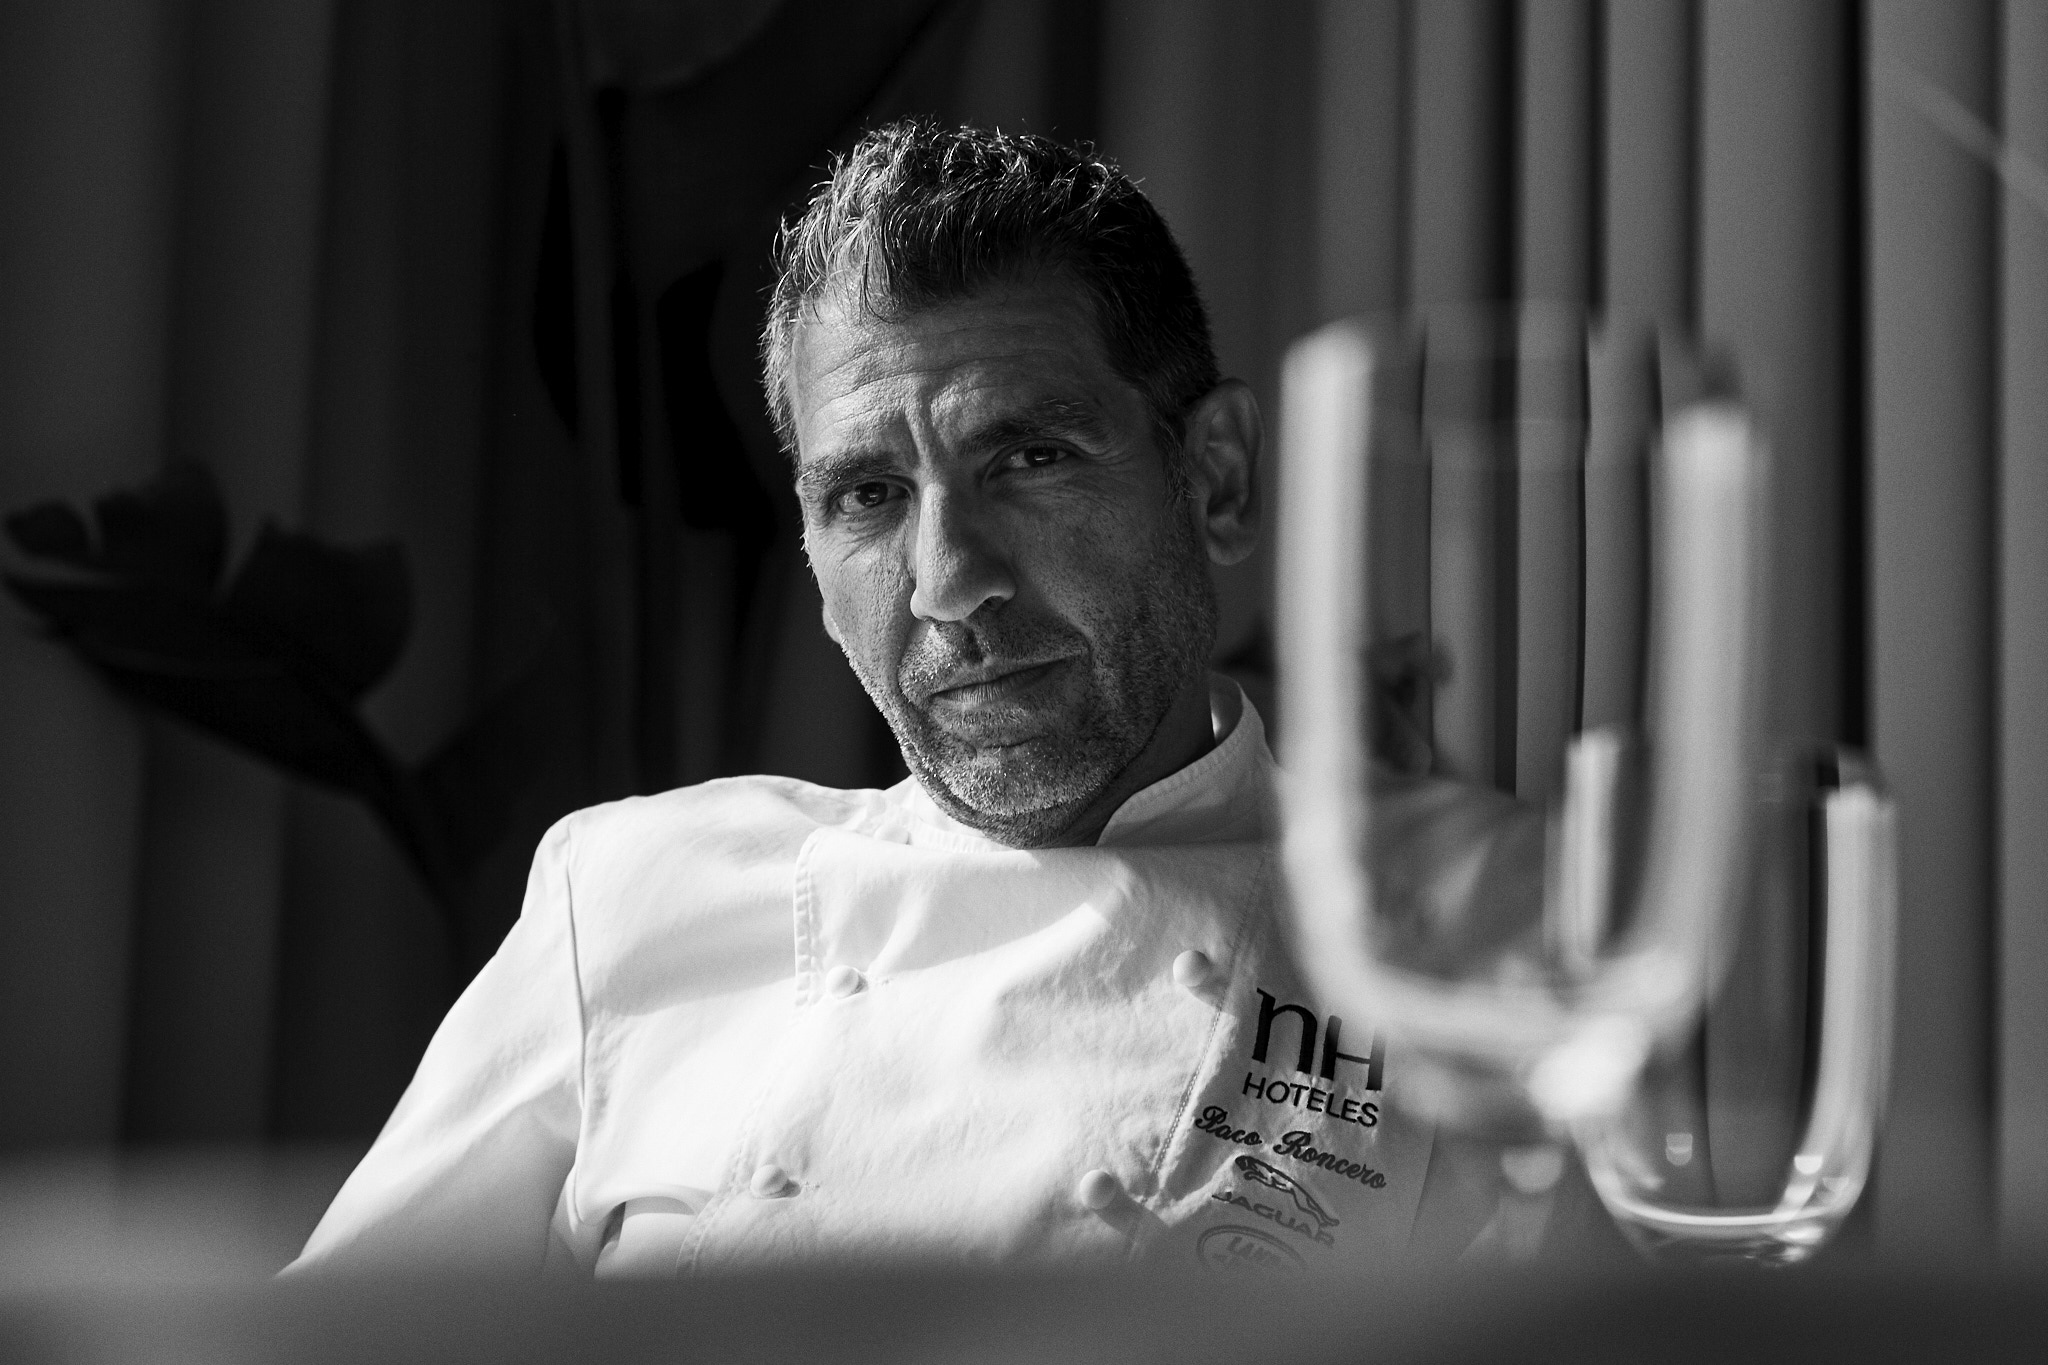 Paco Roncero. Portrait by Jacobo Medrano for Club de Gourmets magazine.